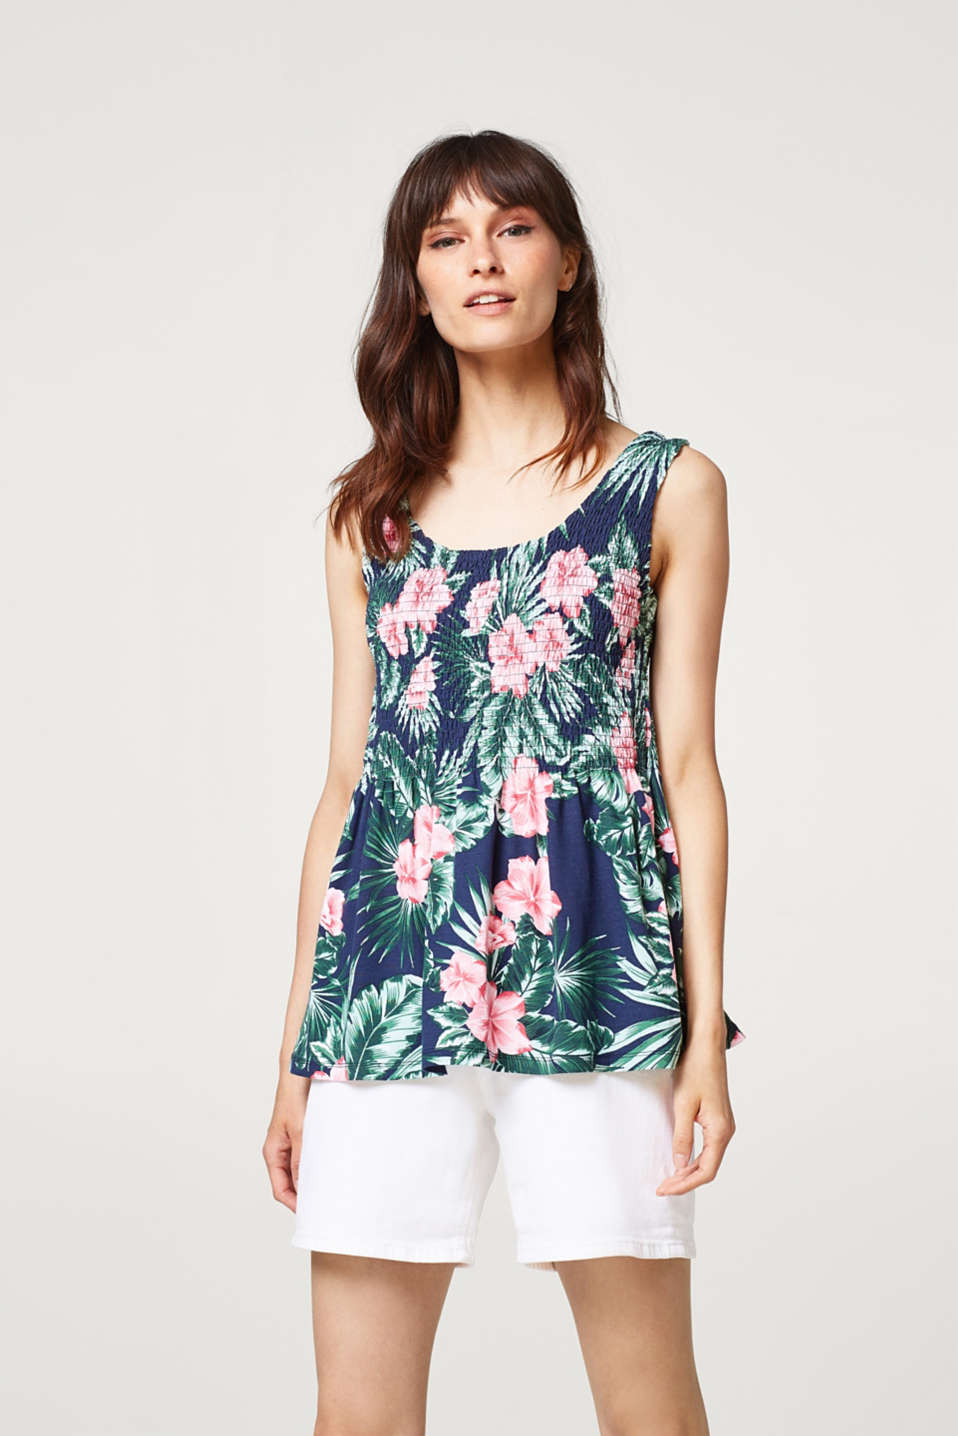 Esprit - Swirling, smocked woven top with a floral print